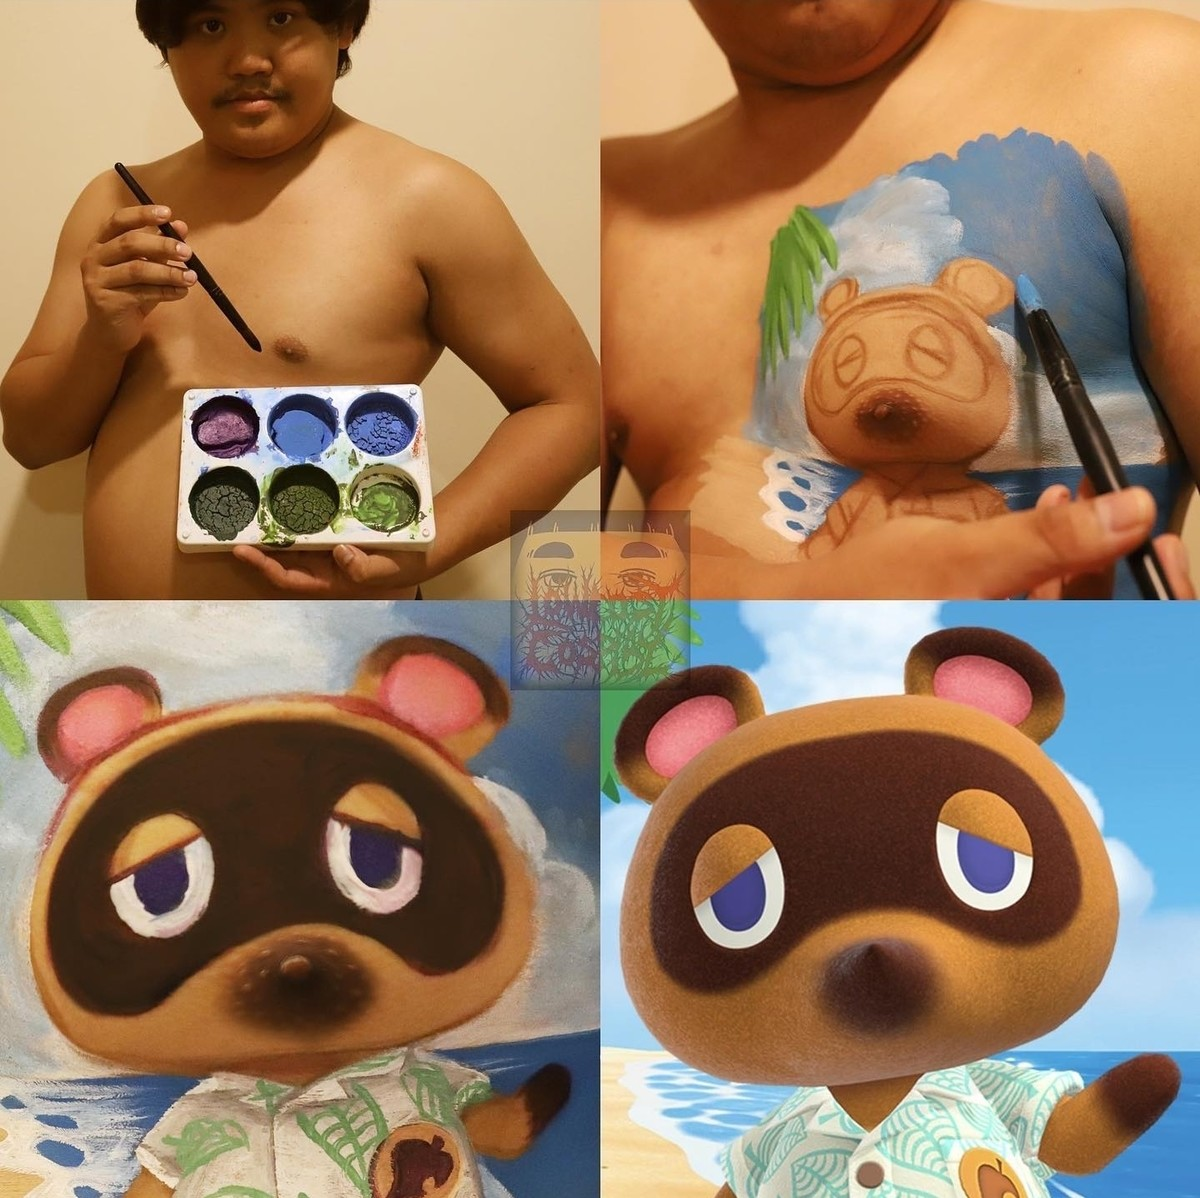 Rosebud. .. Nintendo stole this man's nipples what the hell